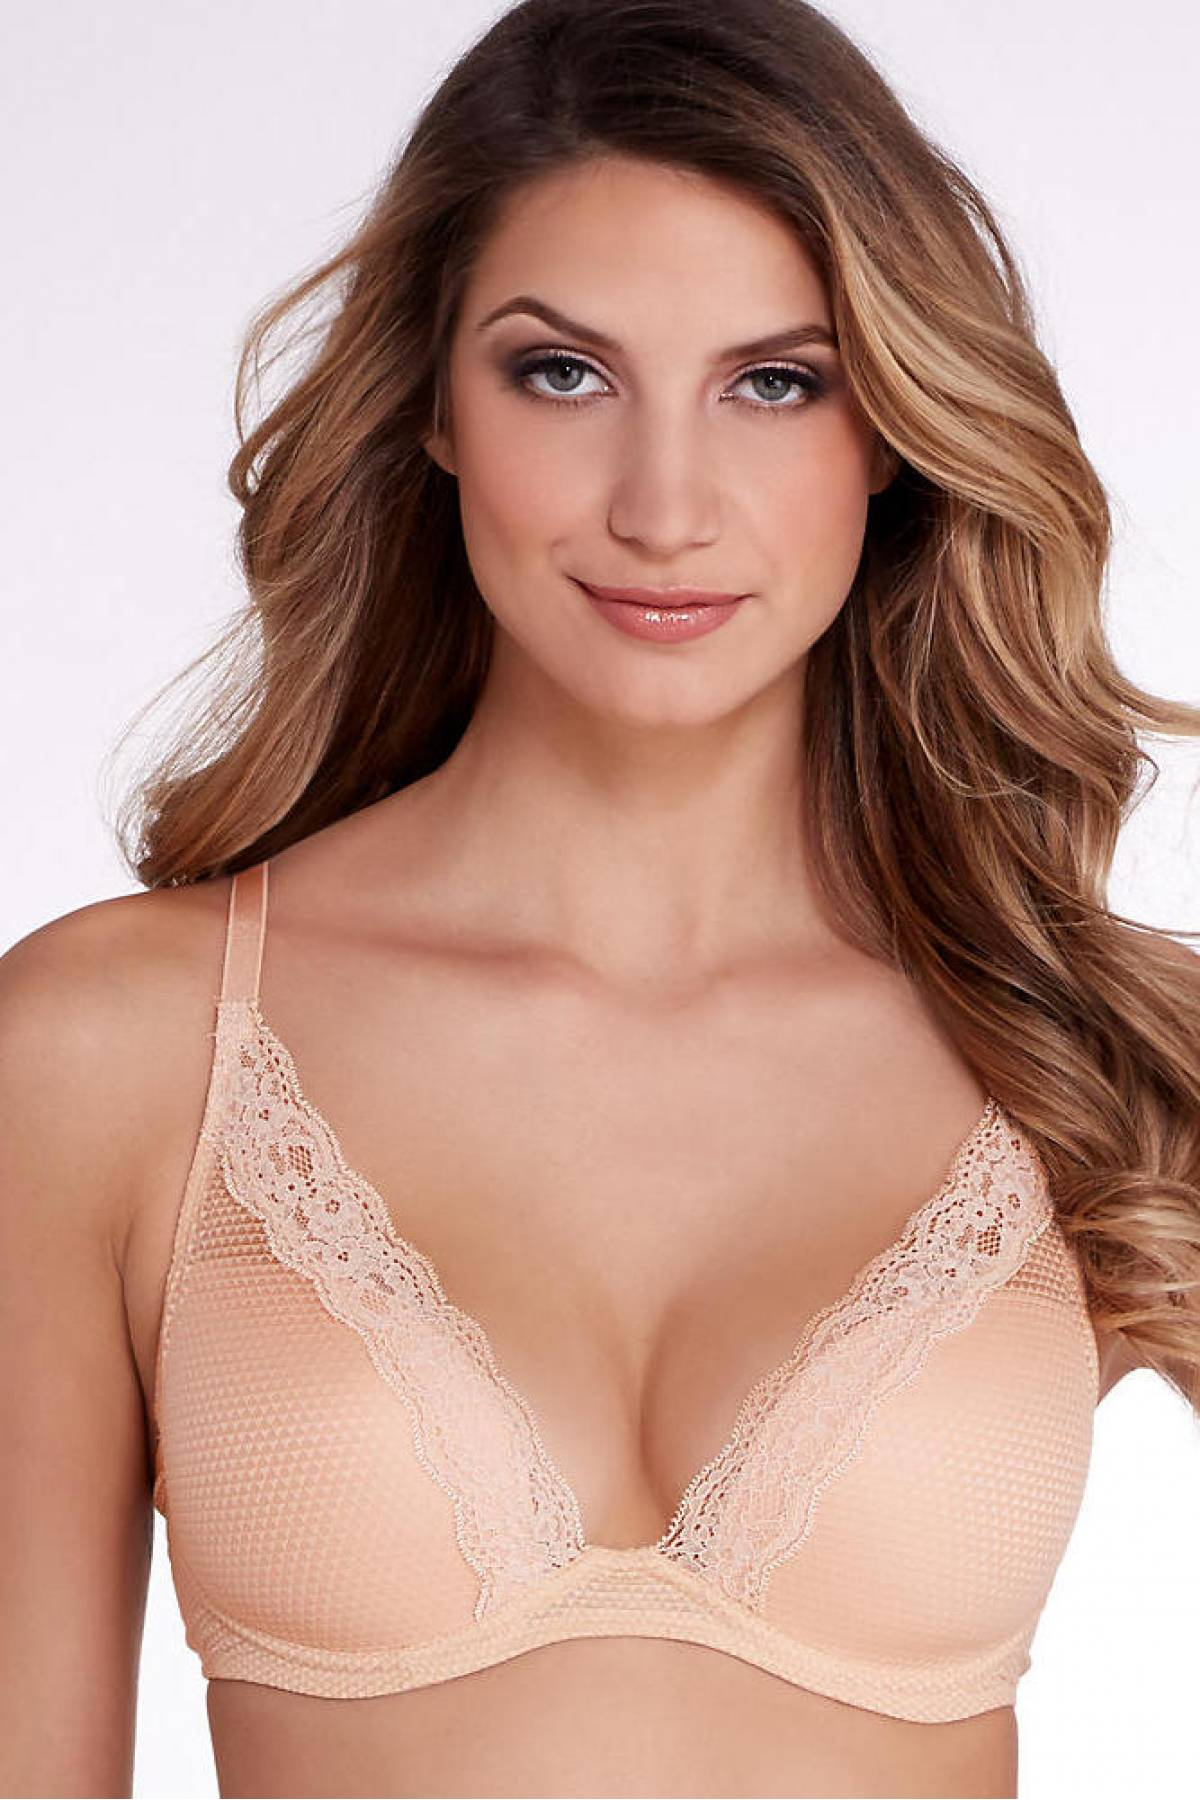 College girl sexy nude color bras